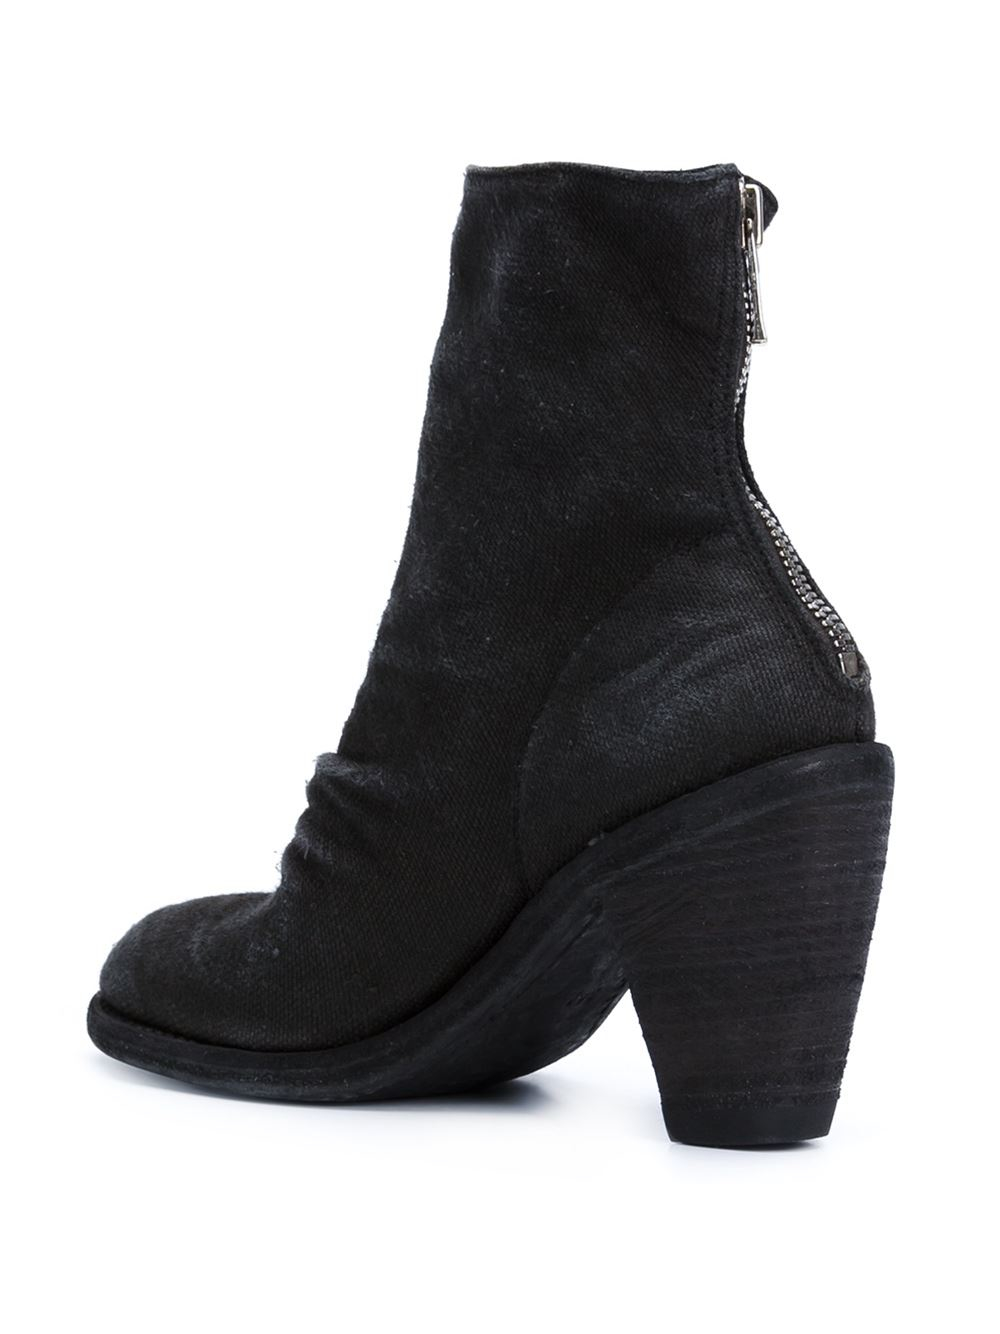 Guidi Zipped Ankle Leather Boots in Black